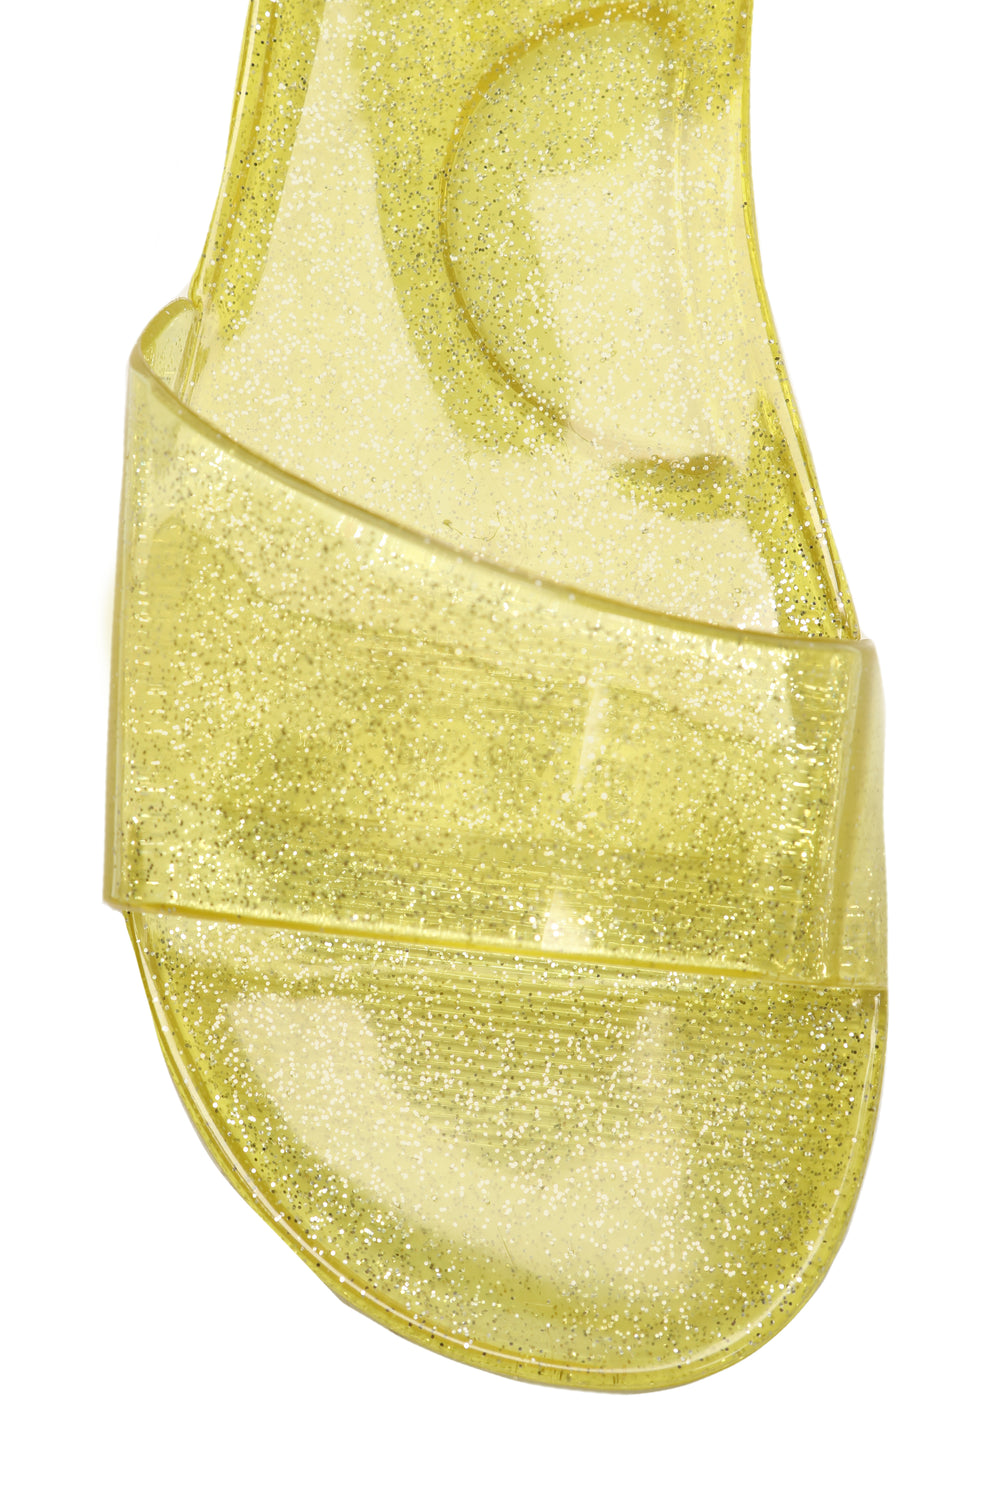 Jelly Of My Glitter Slides - Yellow